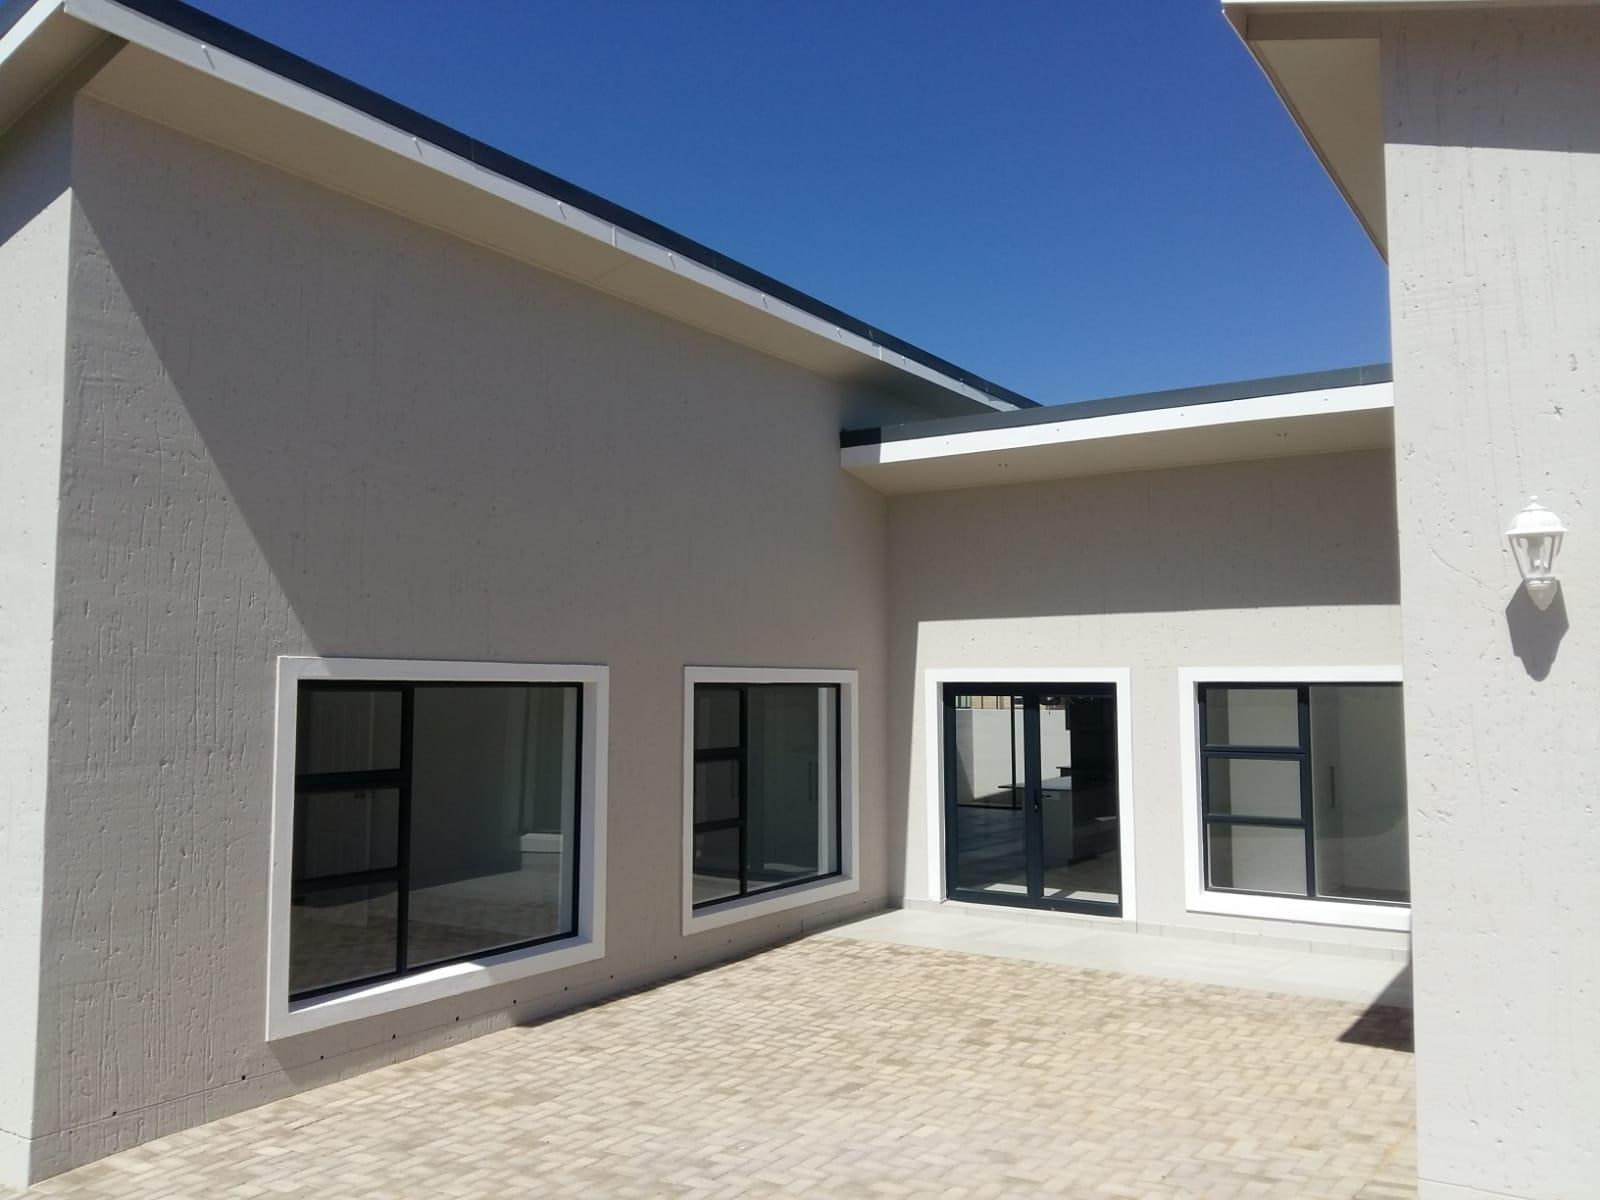 4 Bedroom House for Sale in Monte Christo